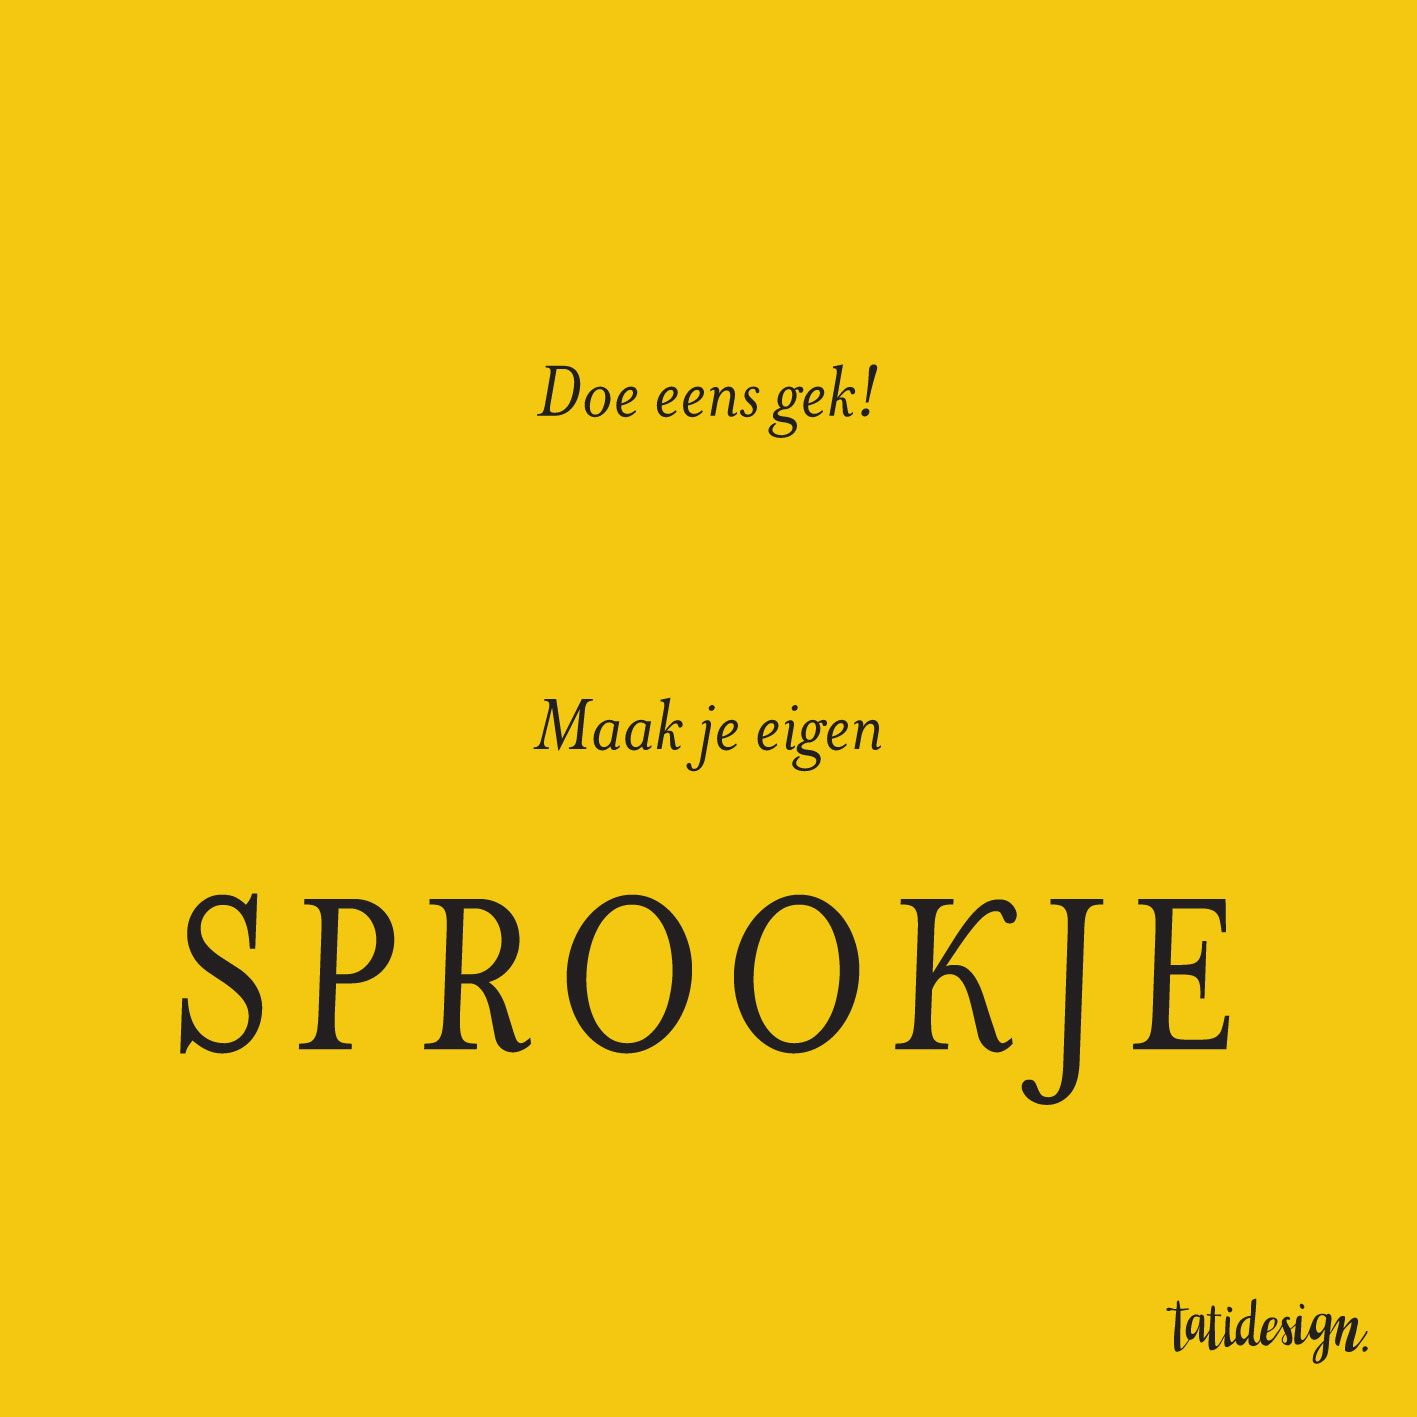 tatidesign-sprookje-communie